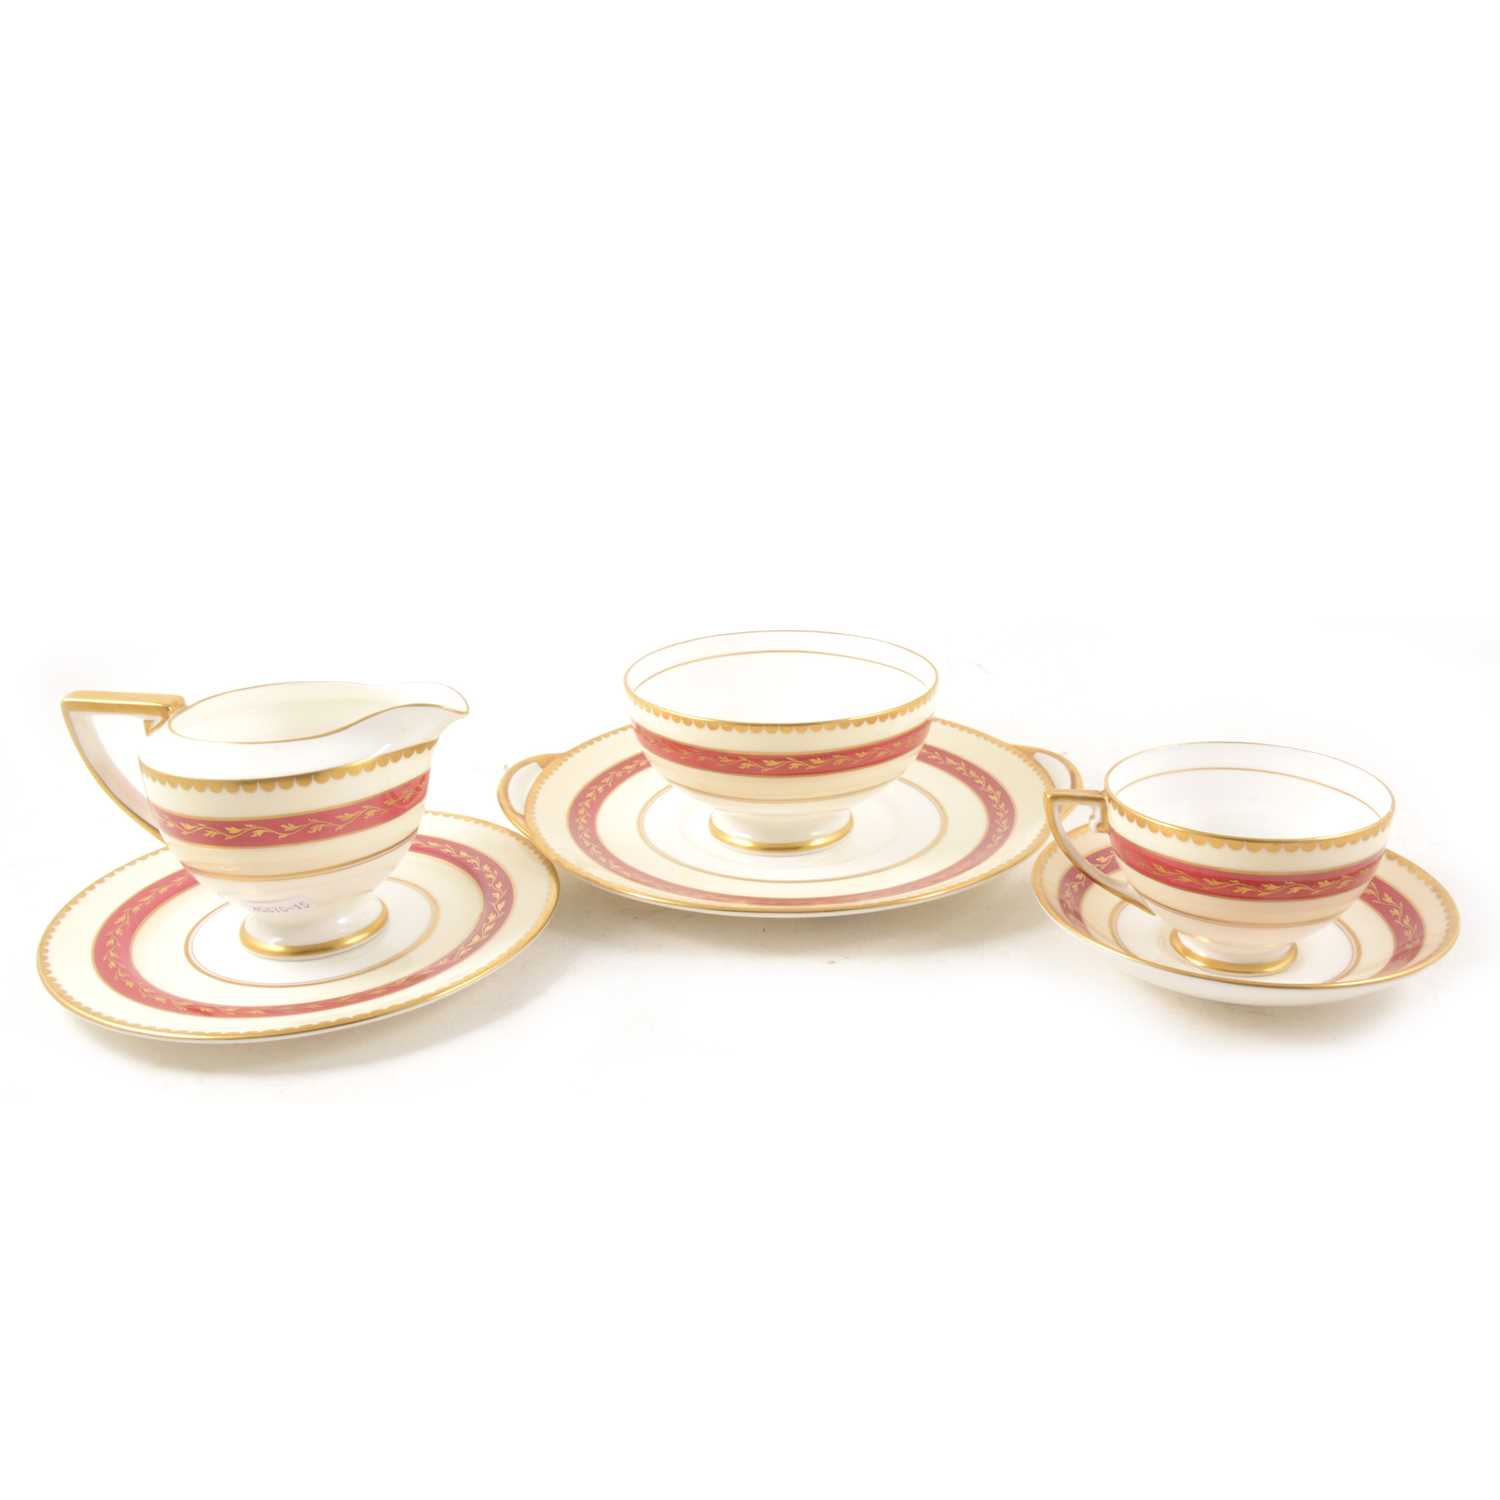 Lot 20-Royal Doulton bone china teaset, cream and red banded, with gilt.